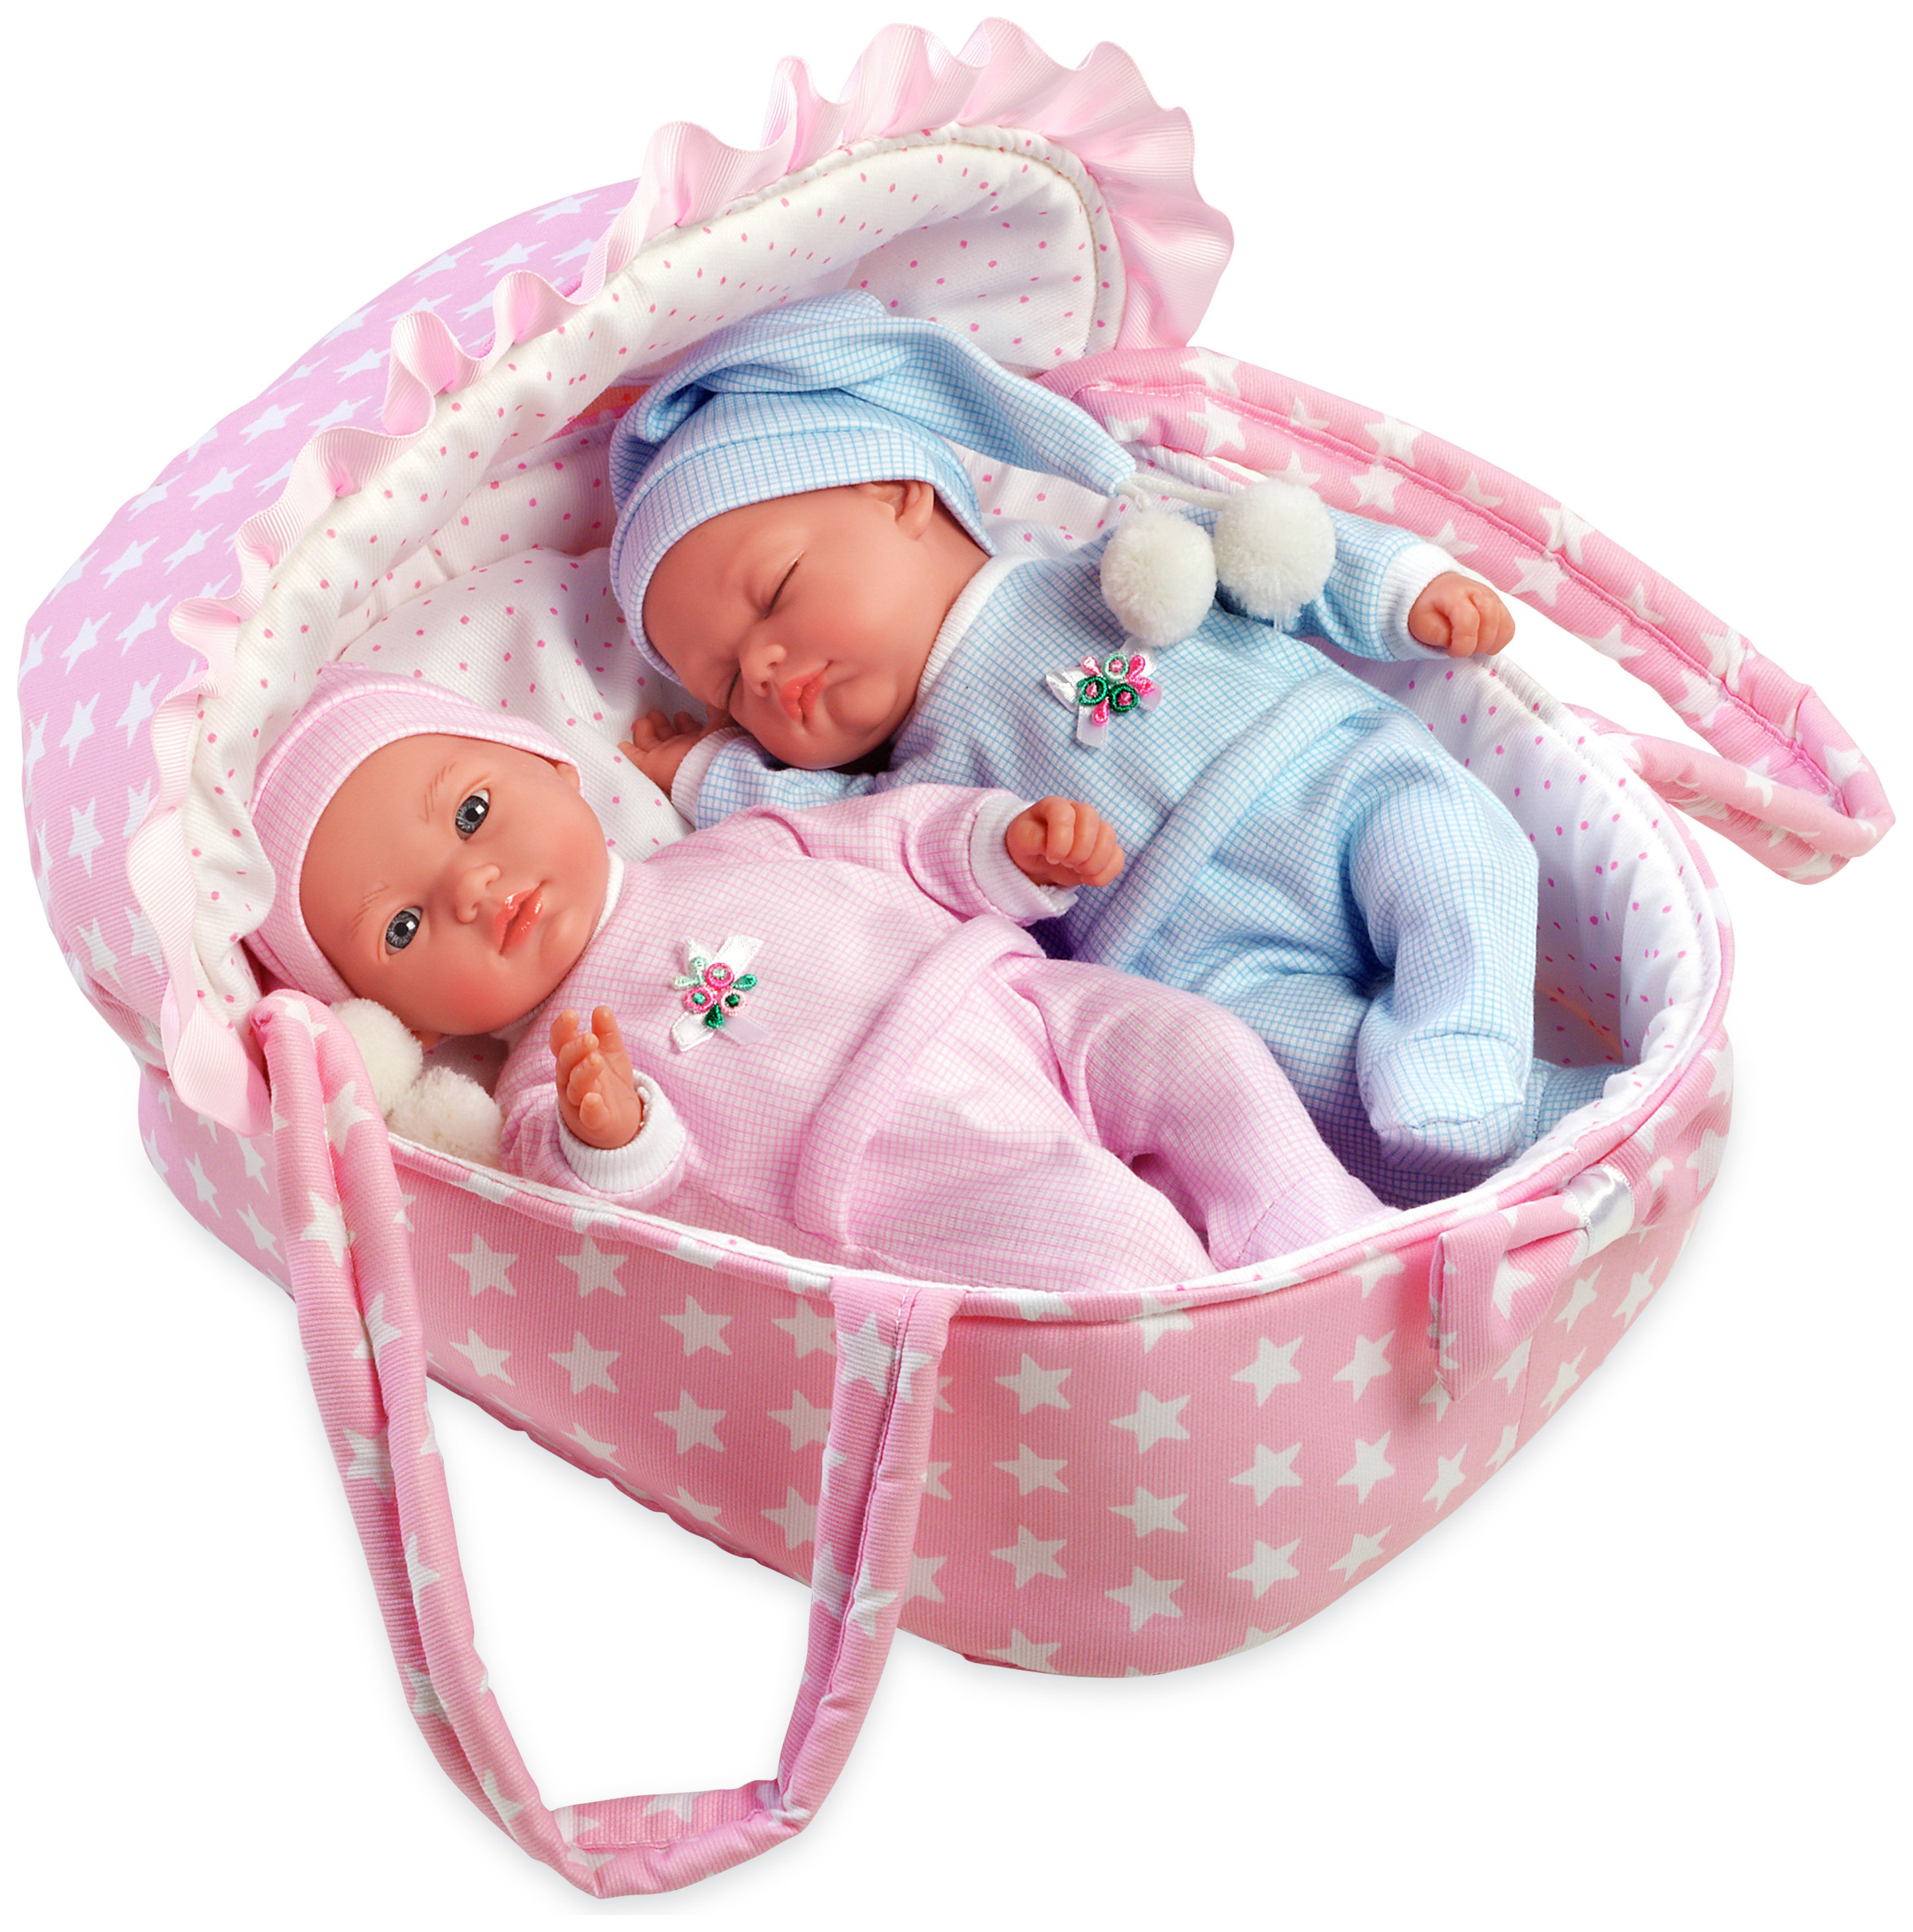 Image of Arias Elegance Baby Twin Dolls with Baby Carrier.